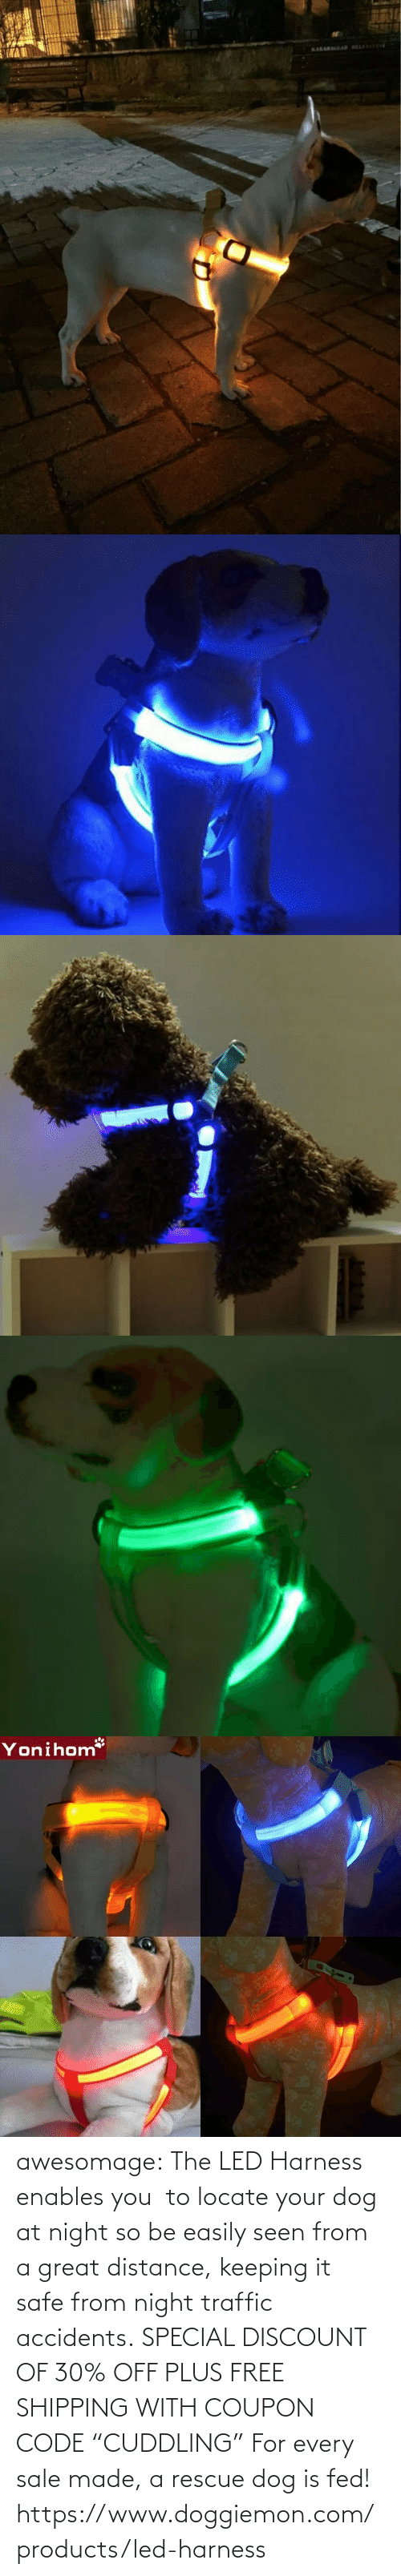 "coupon: A1KAMAGLAR RELERVS  BILIRALLAN JOI   Yonihom  E3  X1  EX awesomage:   The LED Harness enables you  to locate your dog at night so be easily seen from a great distance, keeping it safe from night traffic accidents. SPECIAL DISCOUNT OF 30% OFF PLUS FREE SHIPPING WITH COUPON CODE ""CUDDLING"" For every sale made, a rescue dog is fed!   https://www.doggiemon.com/products/led-harness"